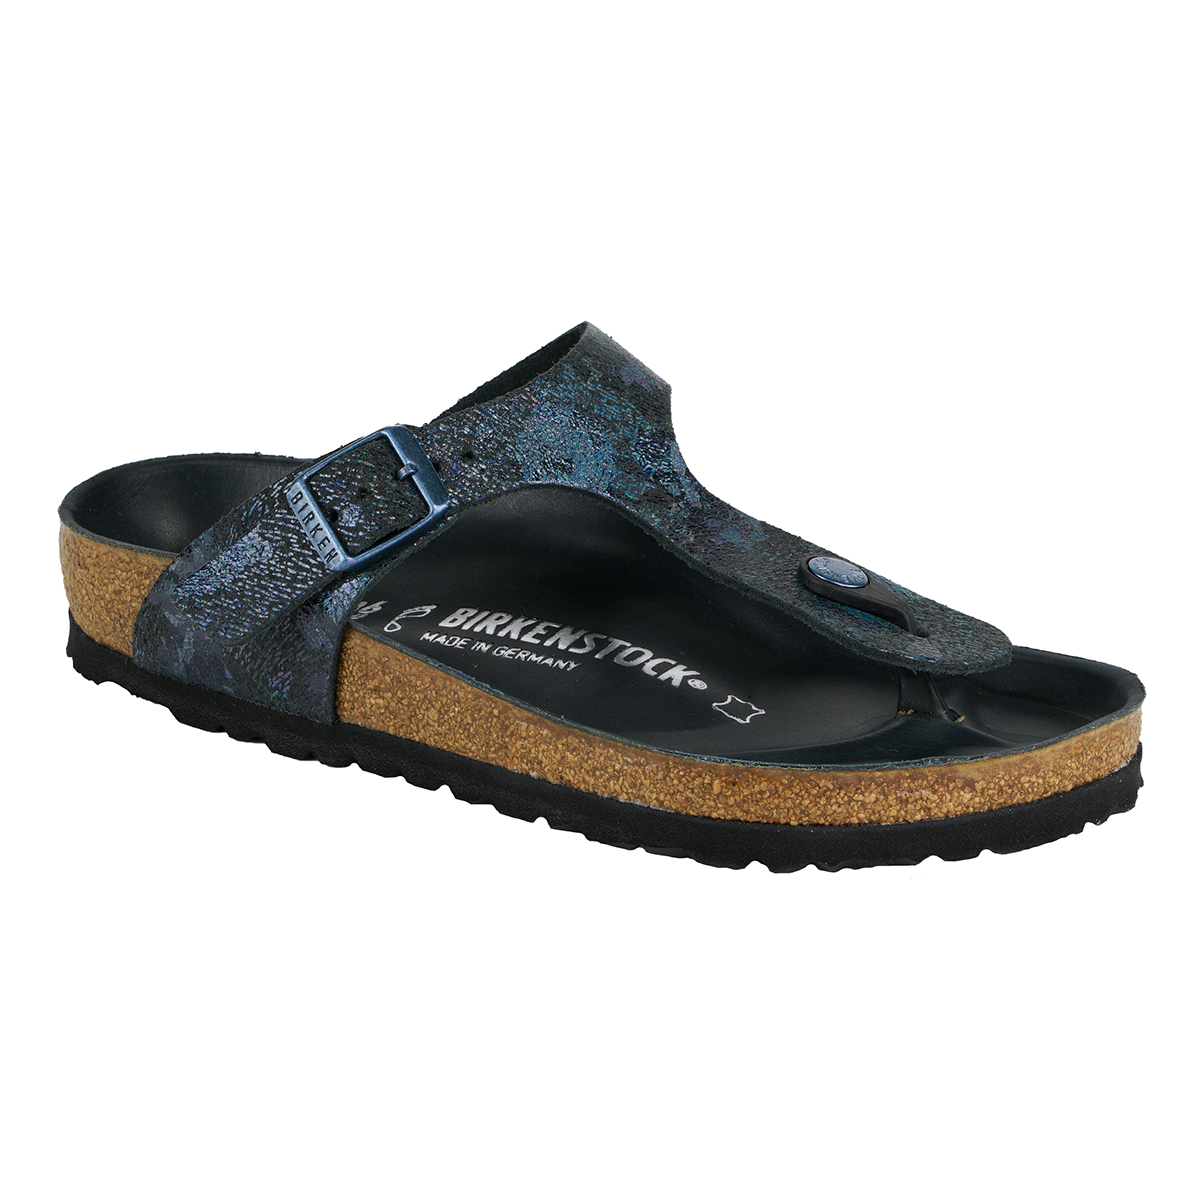 1bf3e9d6be10 Details about Birkenstock Gizeh Natural Leather Sandals Spotted Metallic  Black 37 N